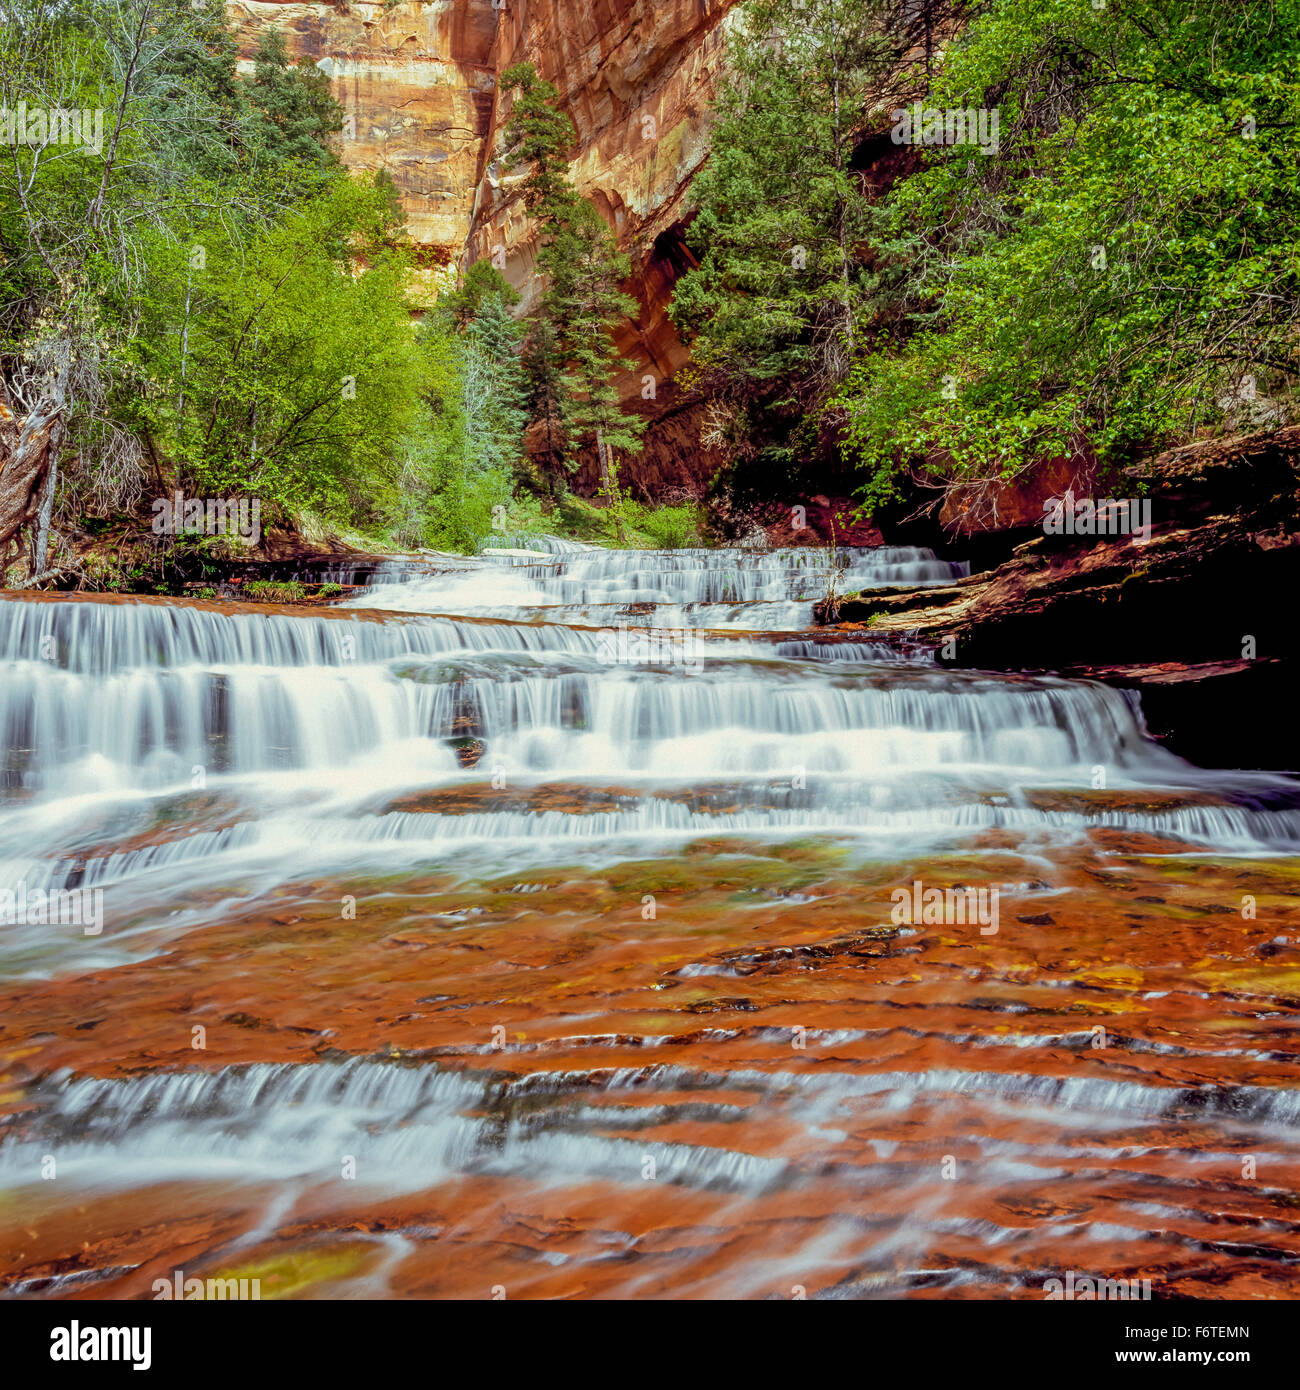 Places To Live Near Zion National Park: Archangel Cascades Stock Photos & Archangel Cascades Stock